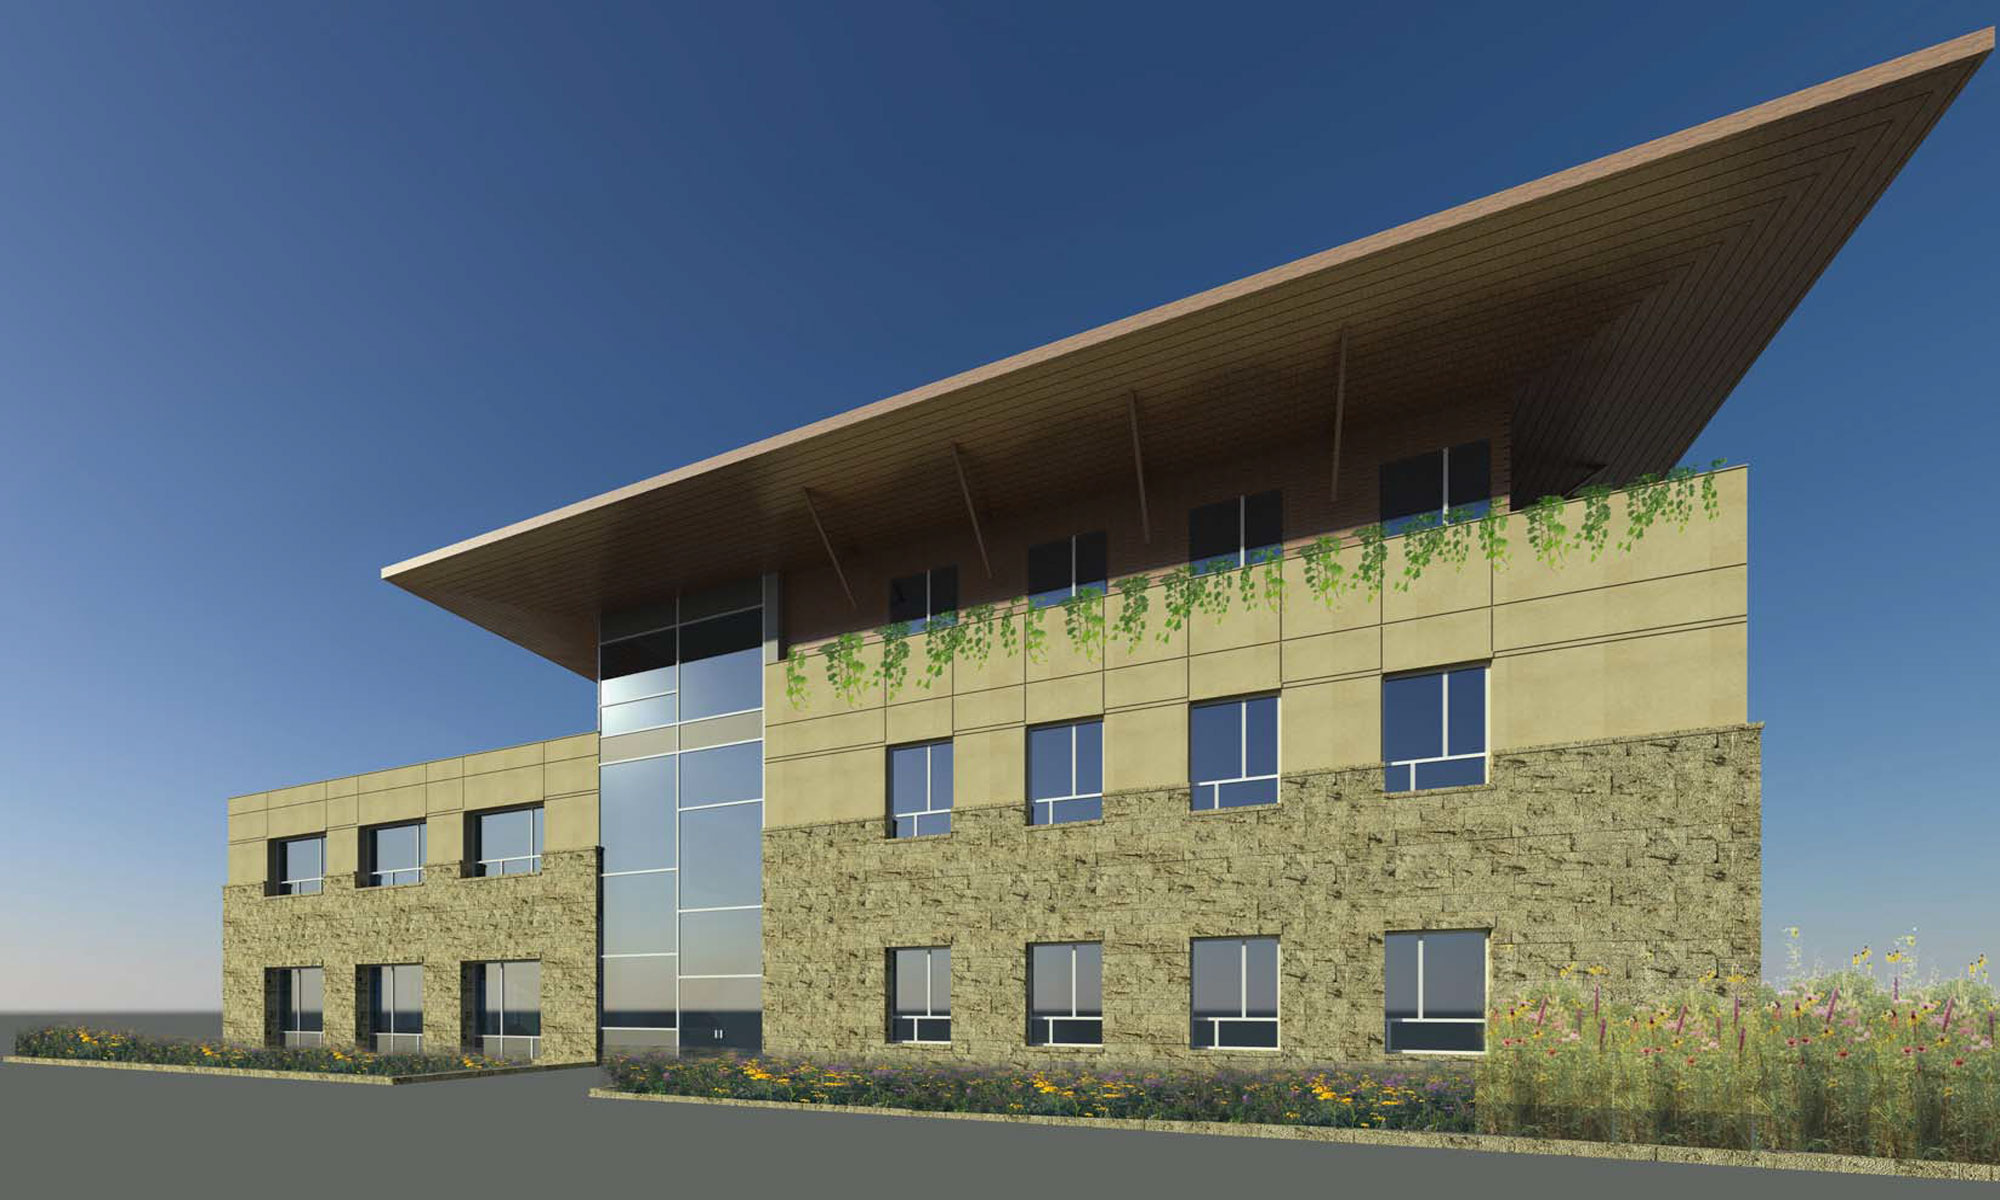 Proposed office building in Elmhurst